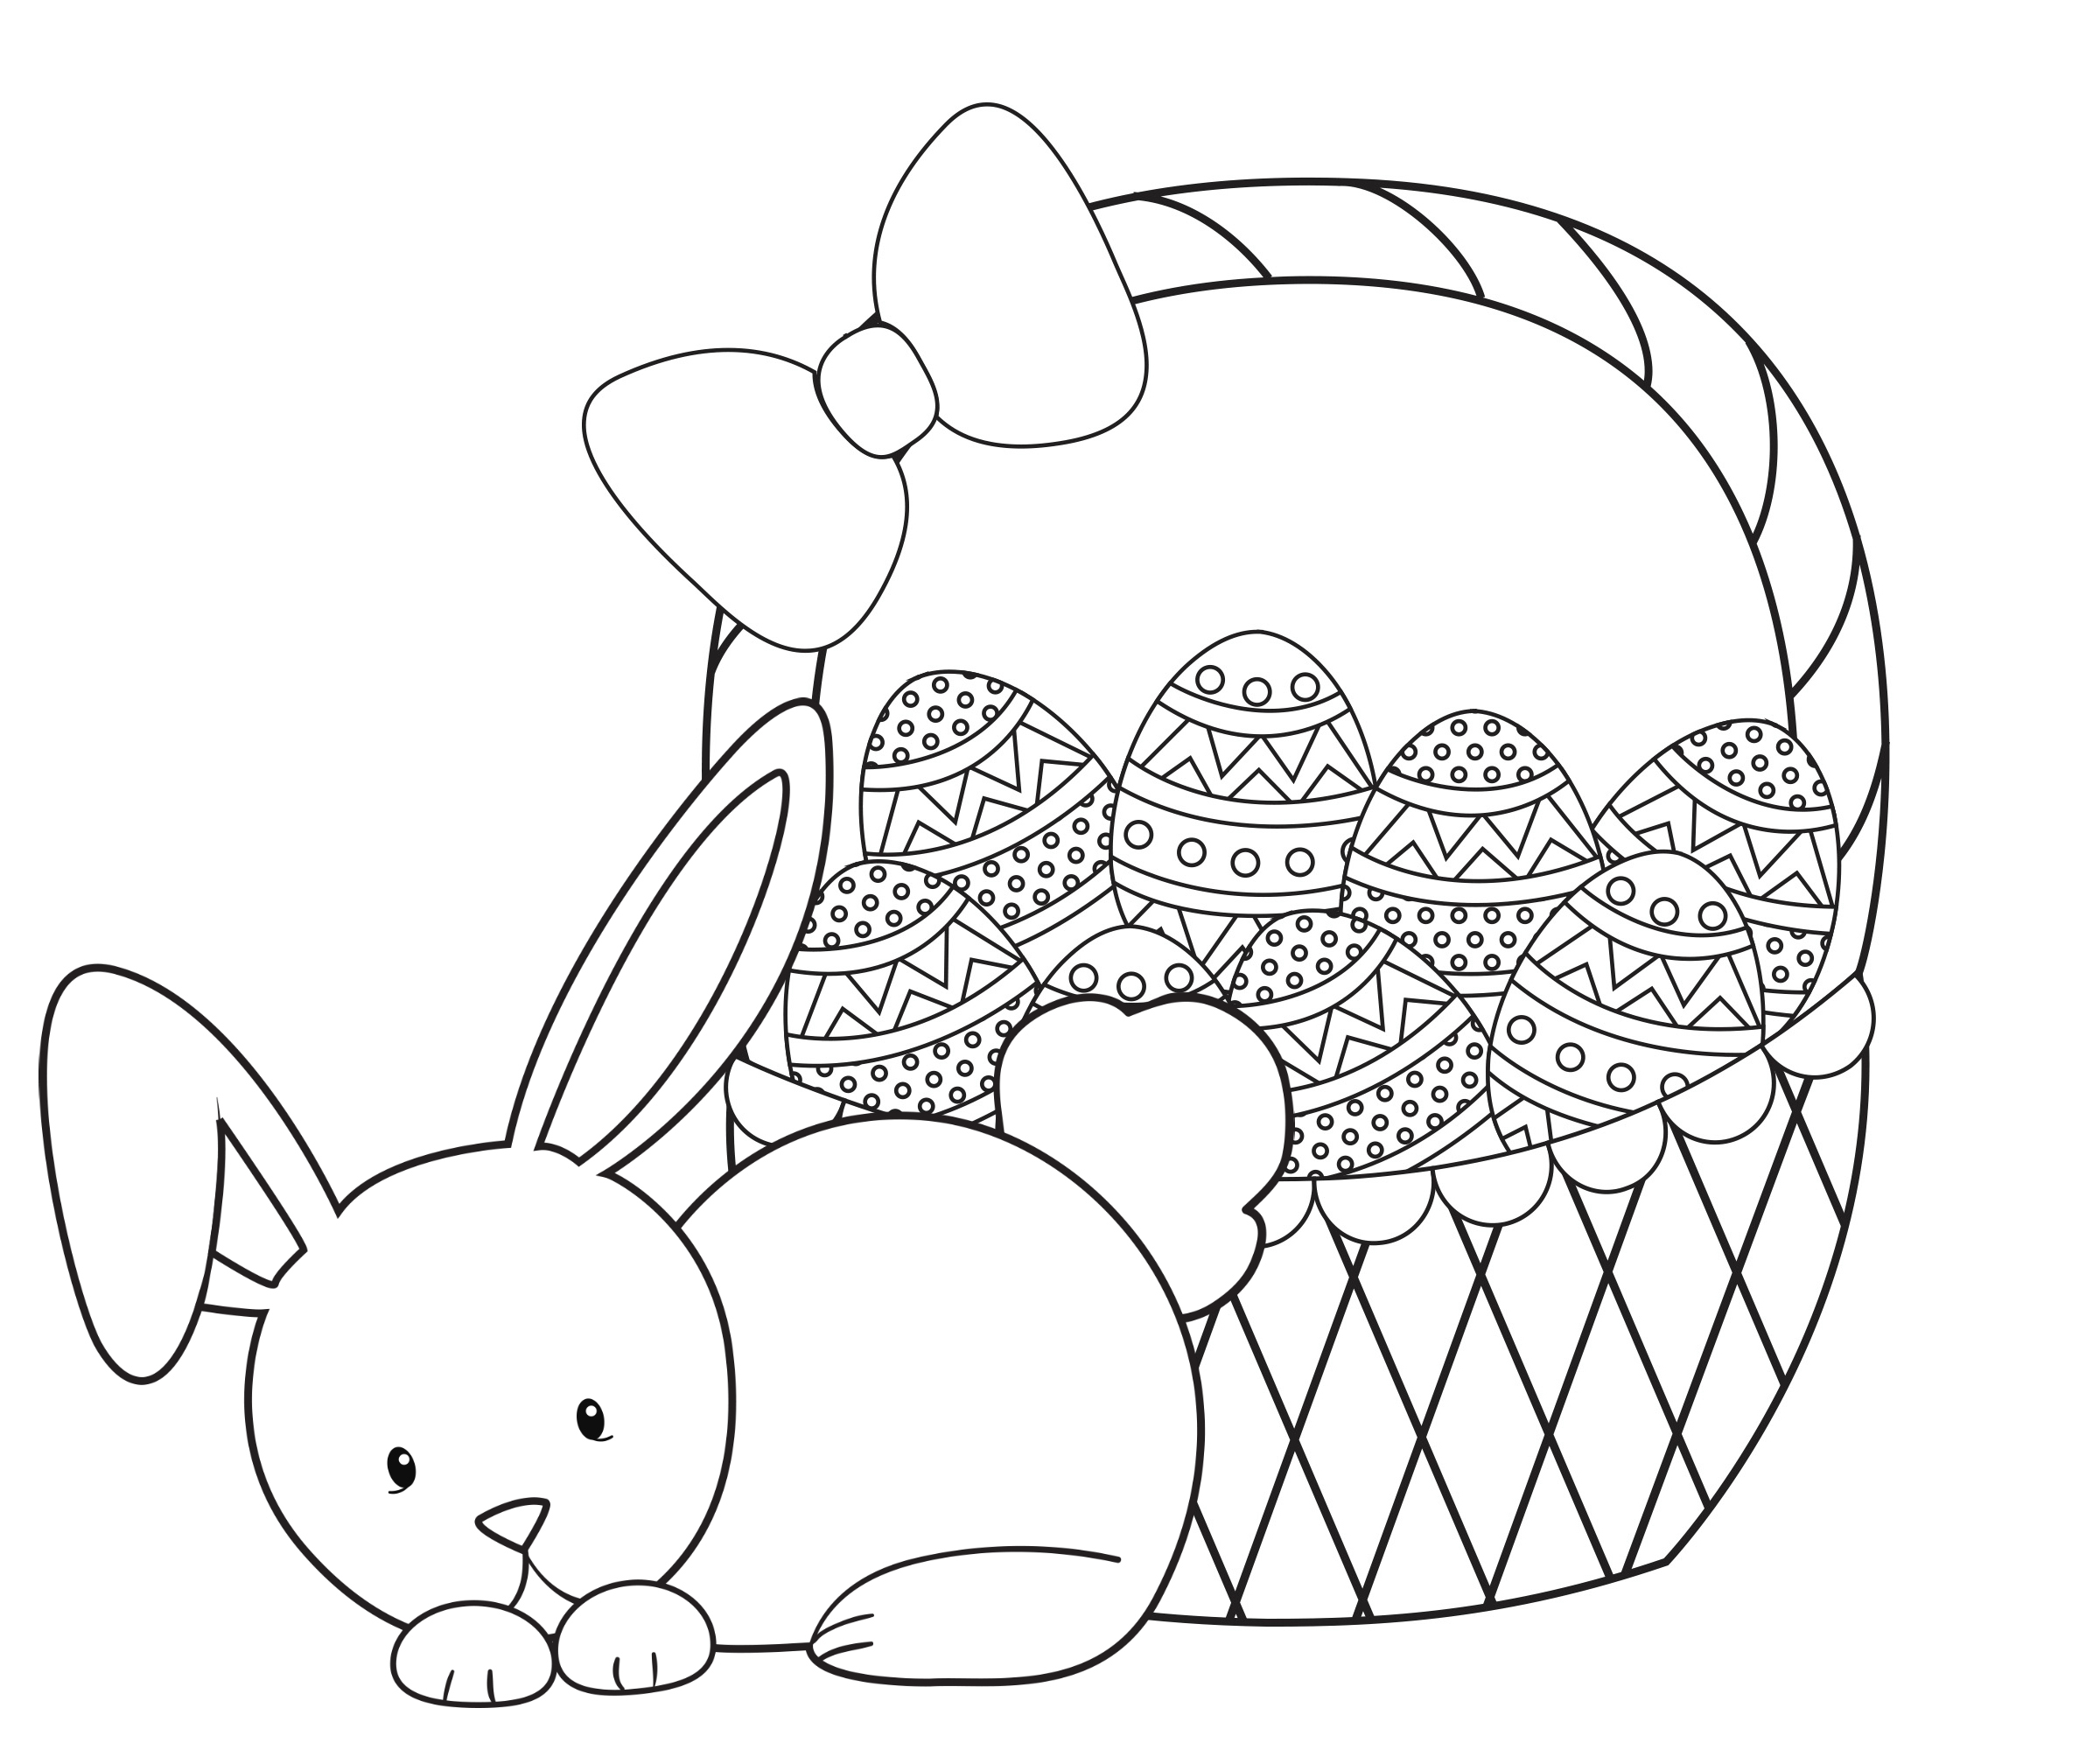 coloring pages easter - photo#9